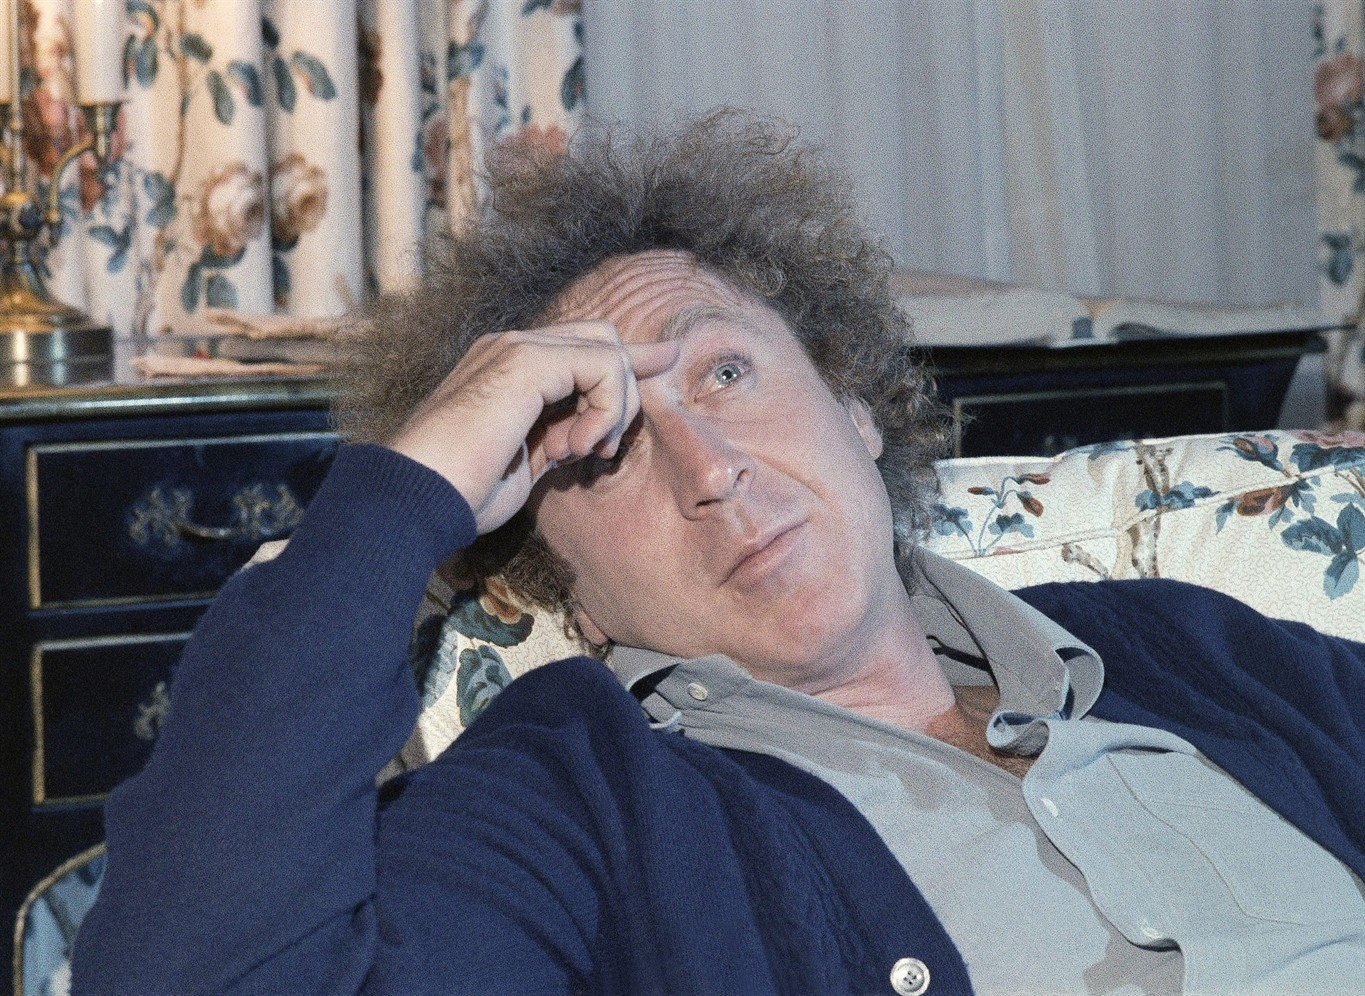 Social media reacts to death of comedian Gene Wilder